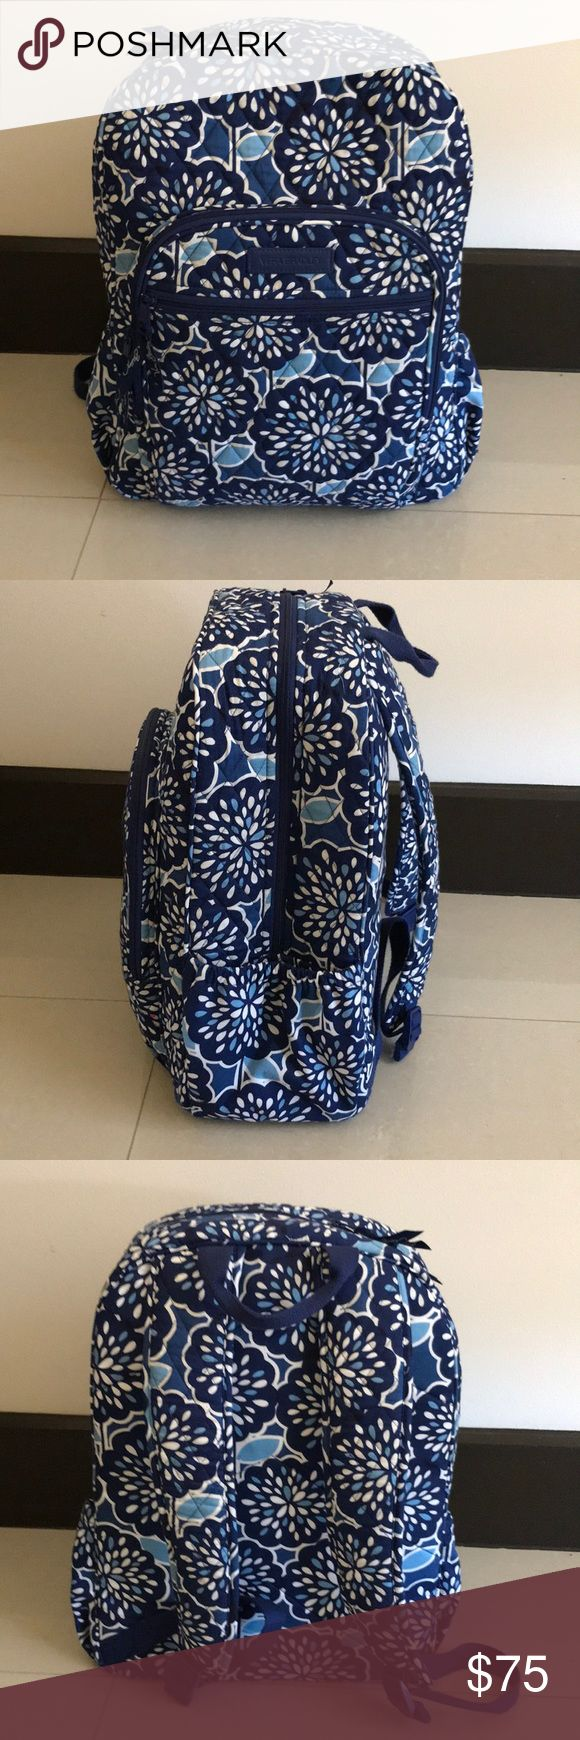 Vera Bradley Campus Backpack Campus Backpack, blue and white print, very good condition, used only for 2 months, can carry a lot of weight, Vera Bradley Bags Backpacks